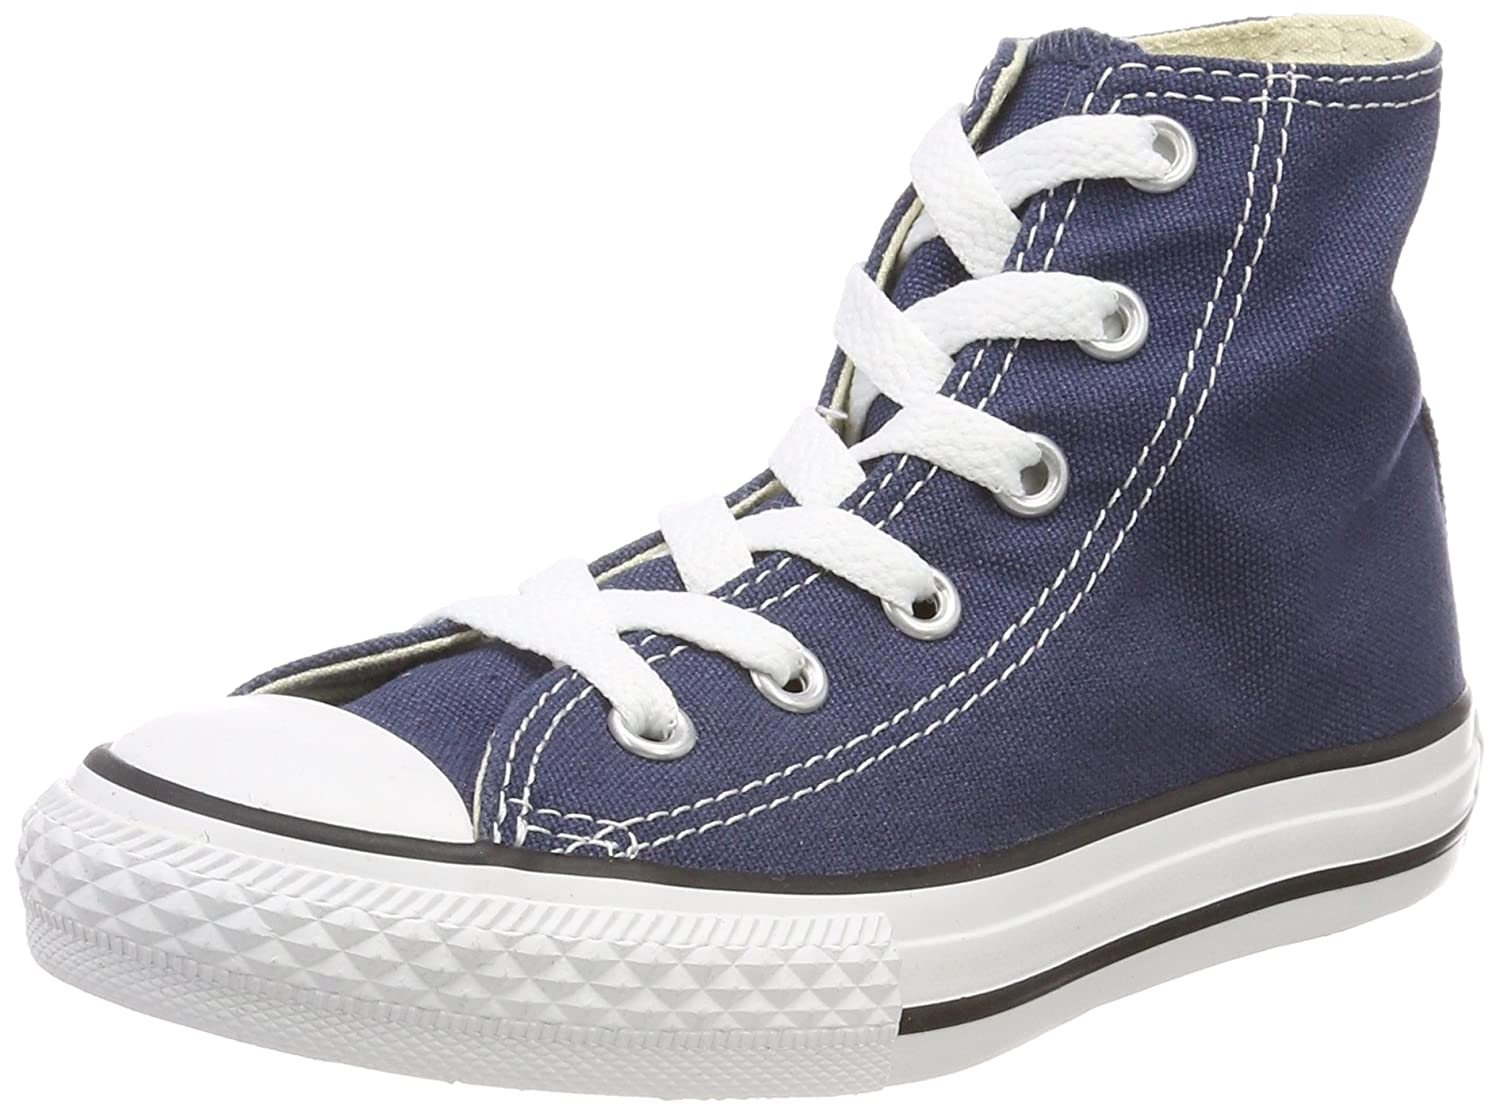 Converse Kids' Chuck Taylor All Star Core Hi (Little) B0786BXQNV 33 EU|Blue